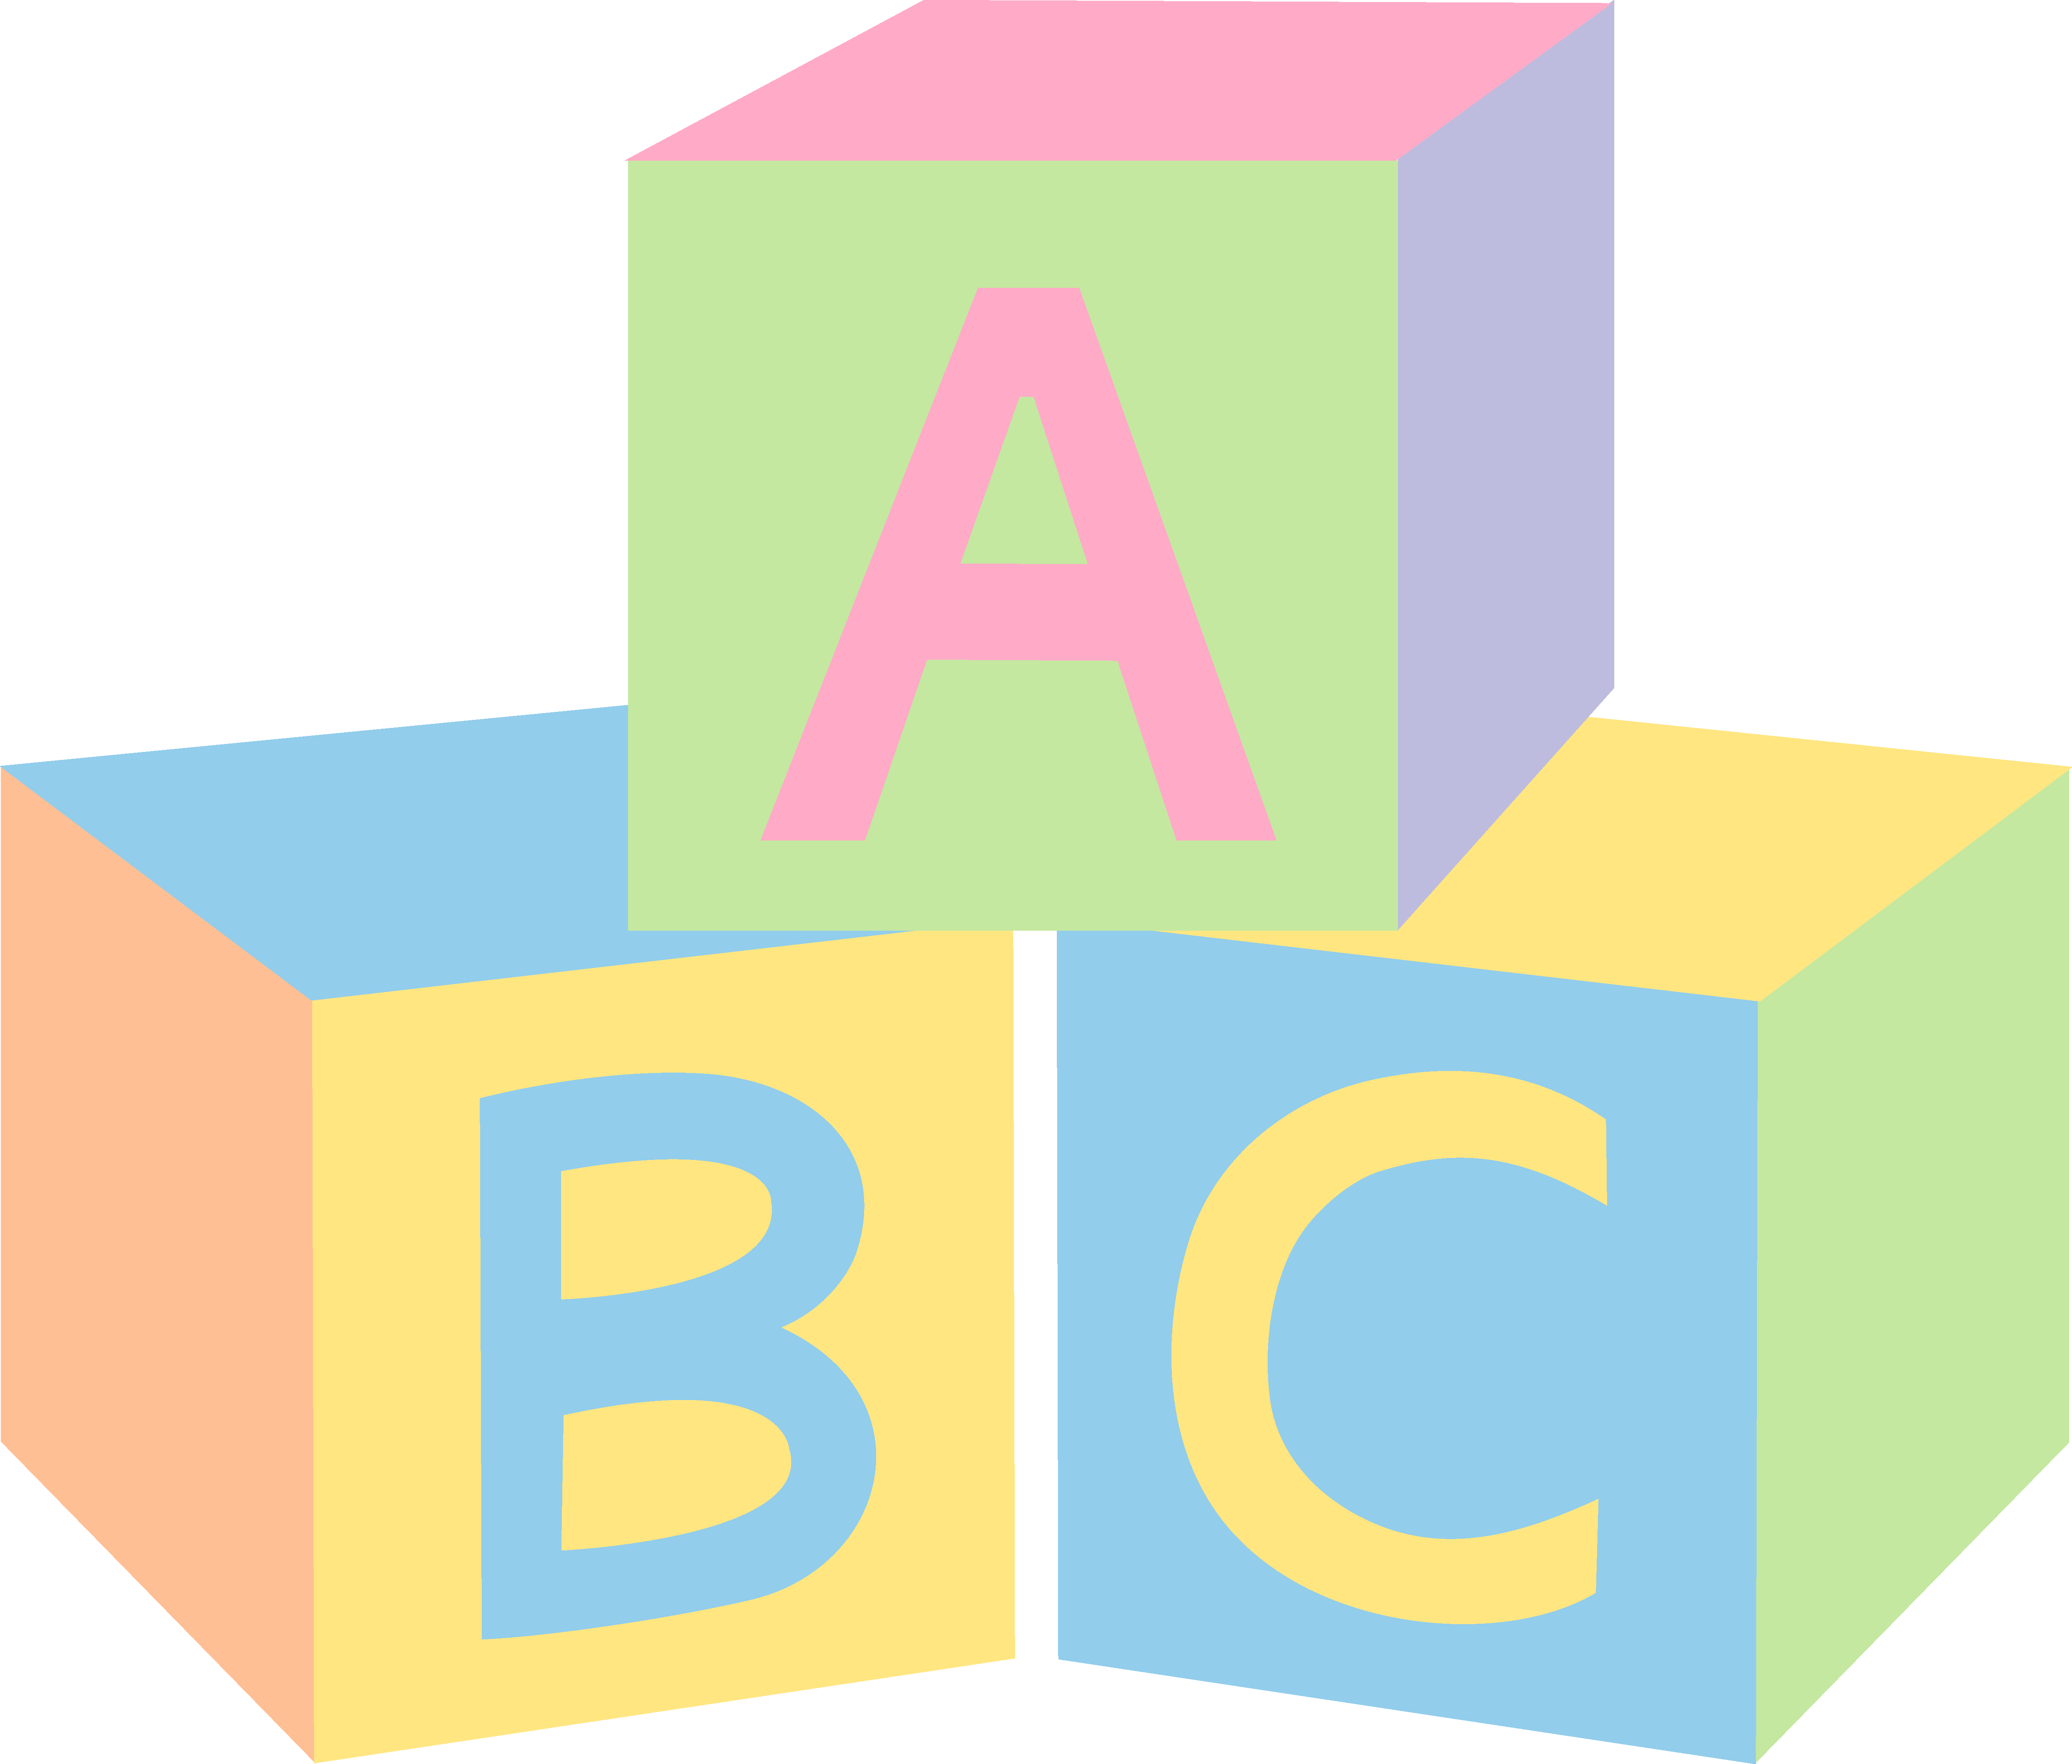 Clip Art Baby Blocks Clipart blank baby blocks clipart kid pastel abc free clip art black background and some ppt